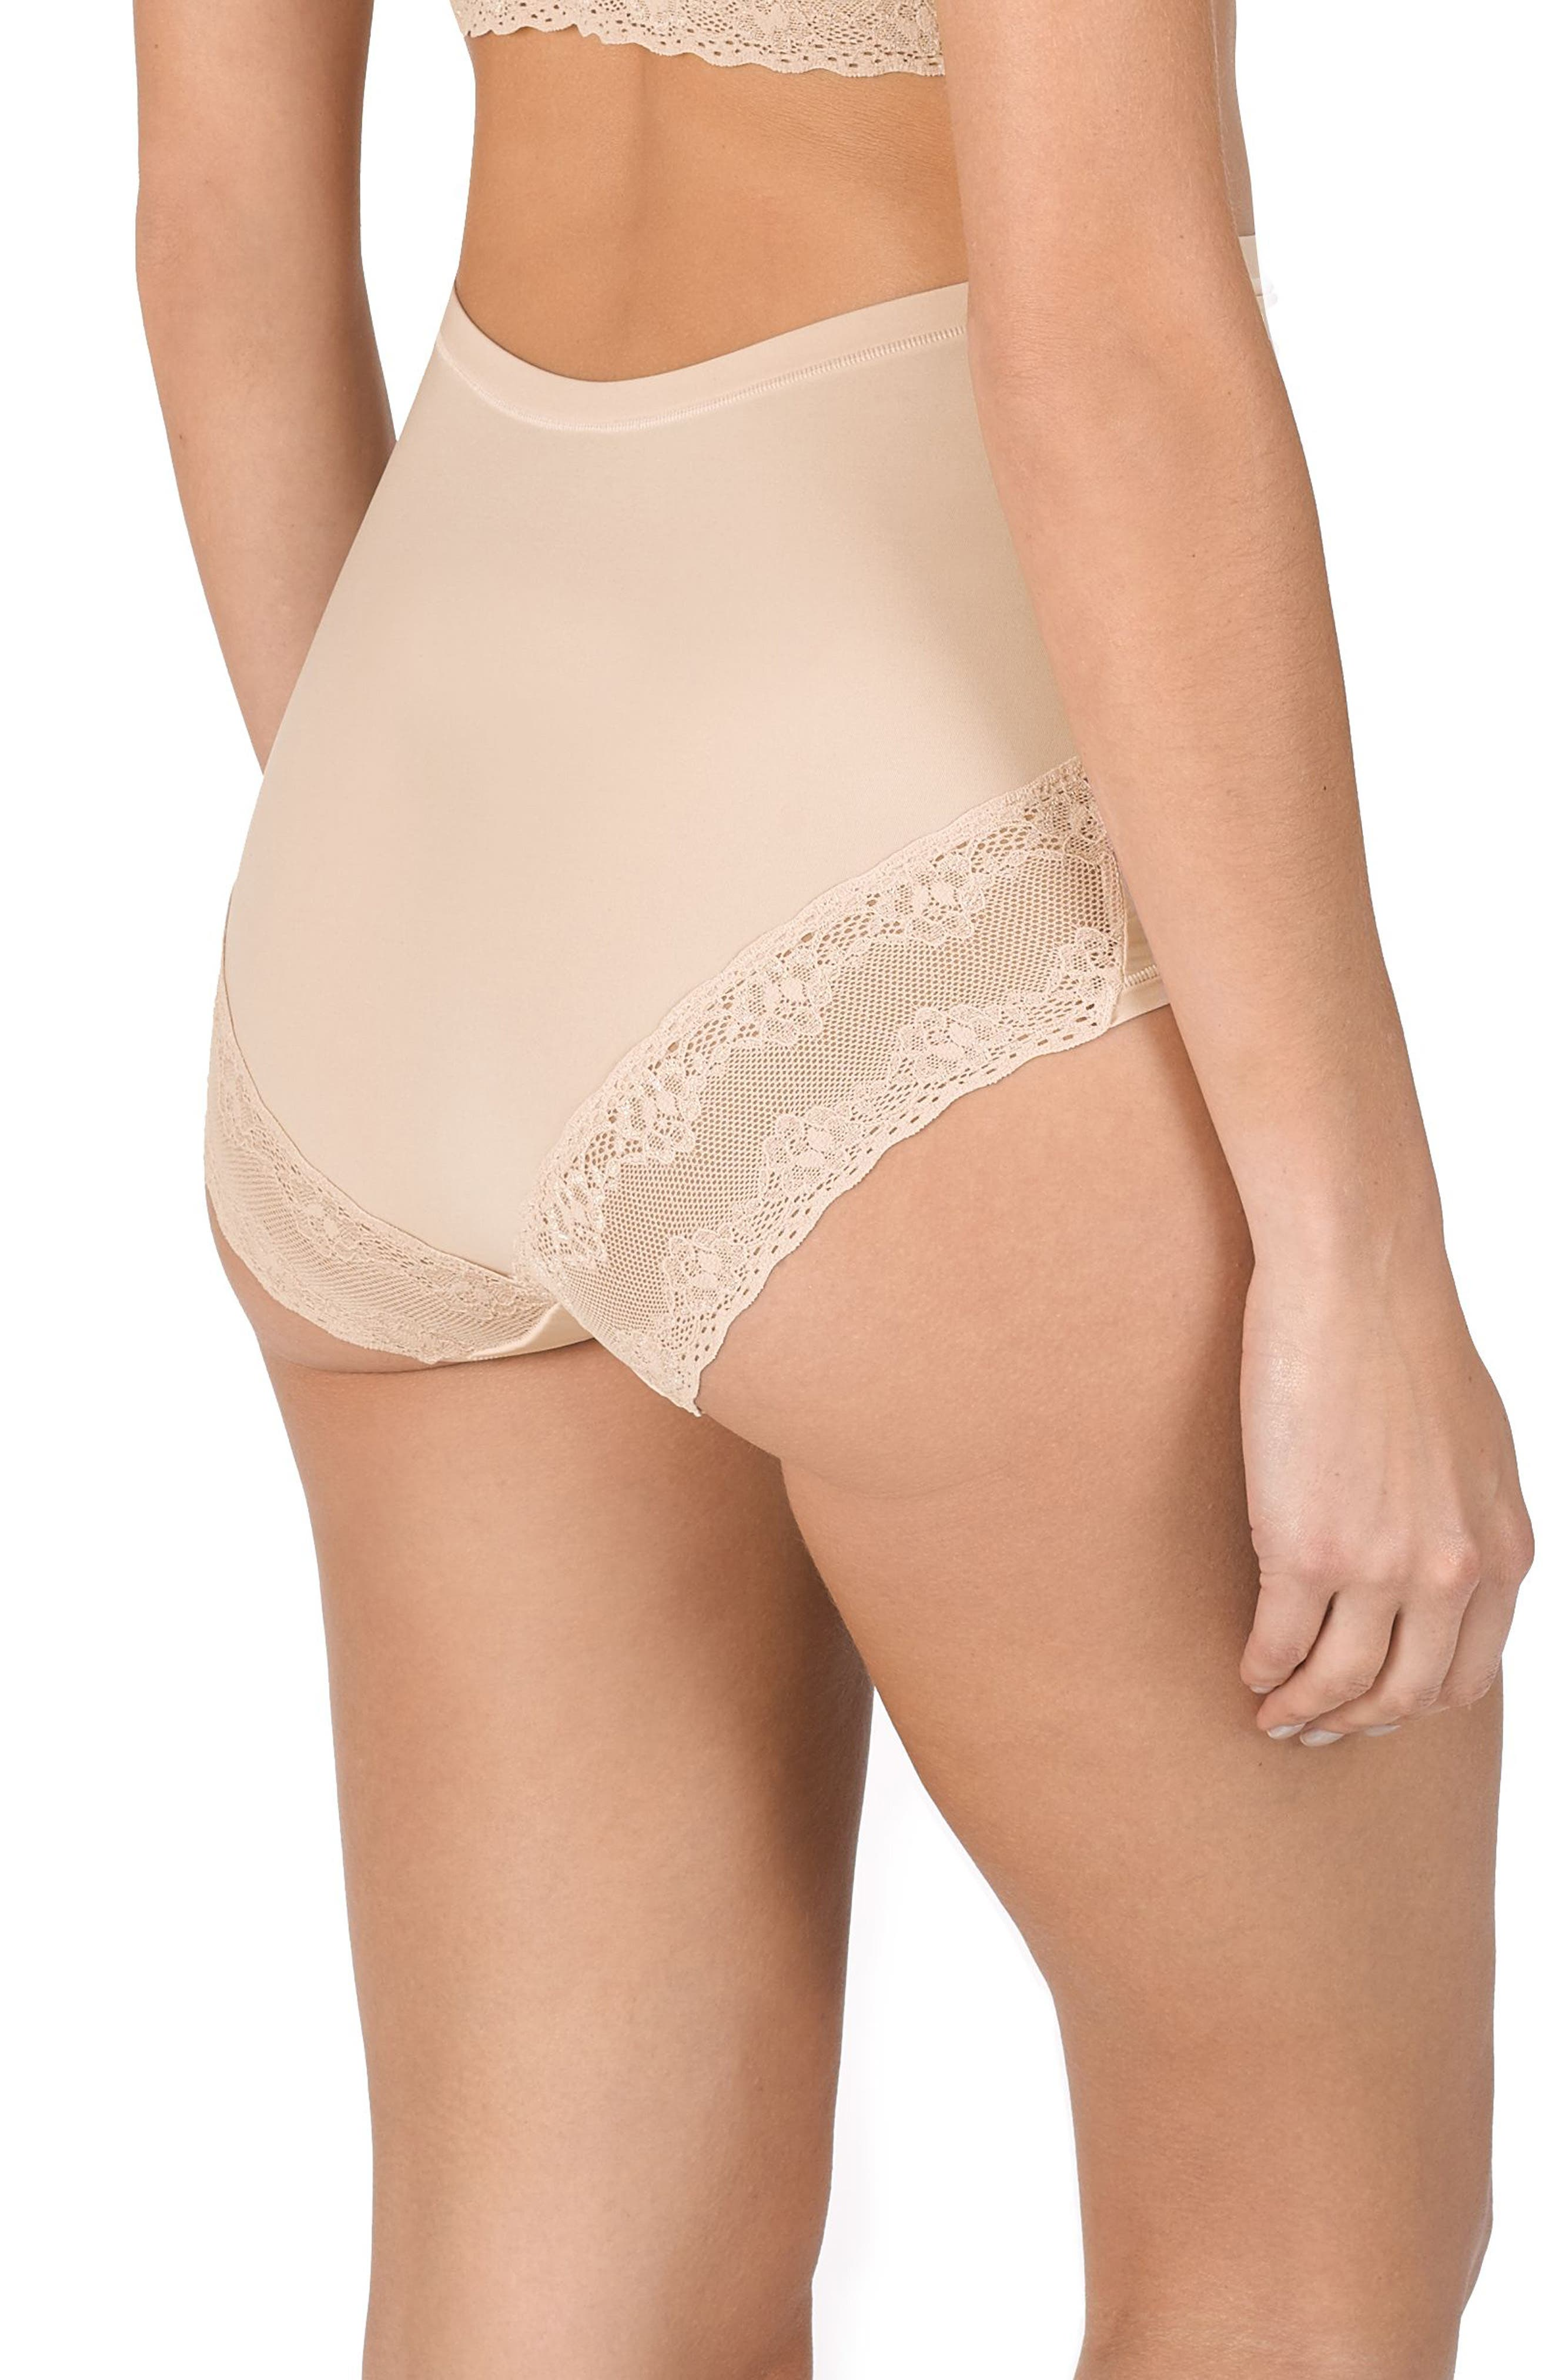 Bliss Maternity Briefs,                             Alternate thumbnail 3, color,                             CAMEO ROSE